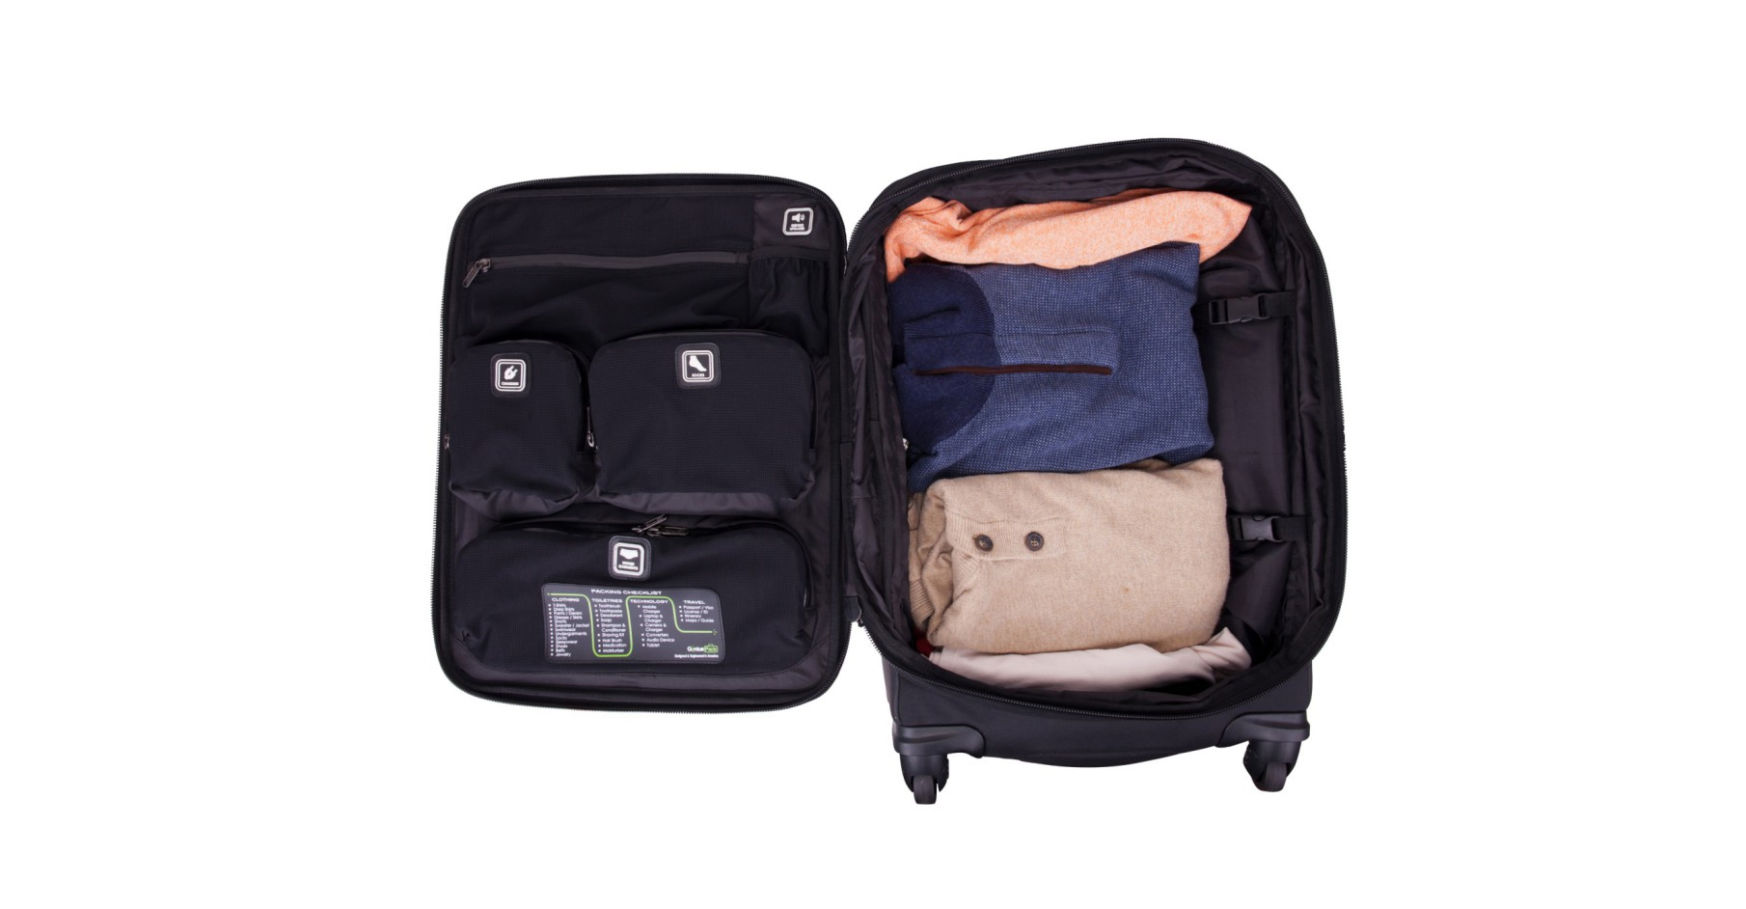 Genius Pack black suitcase